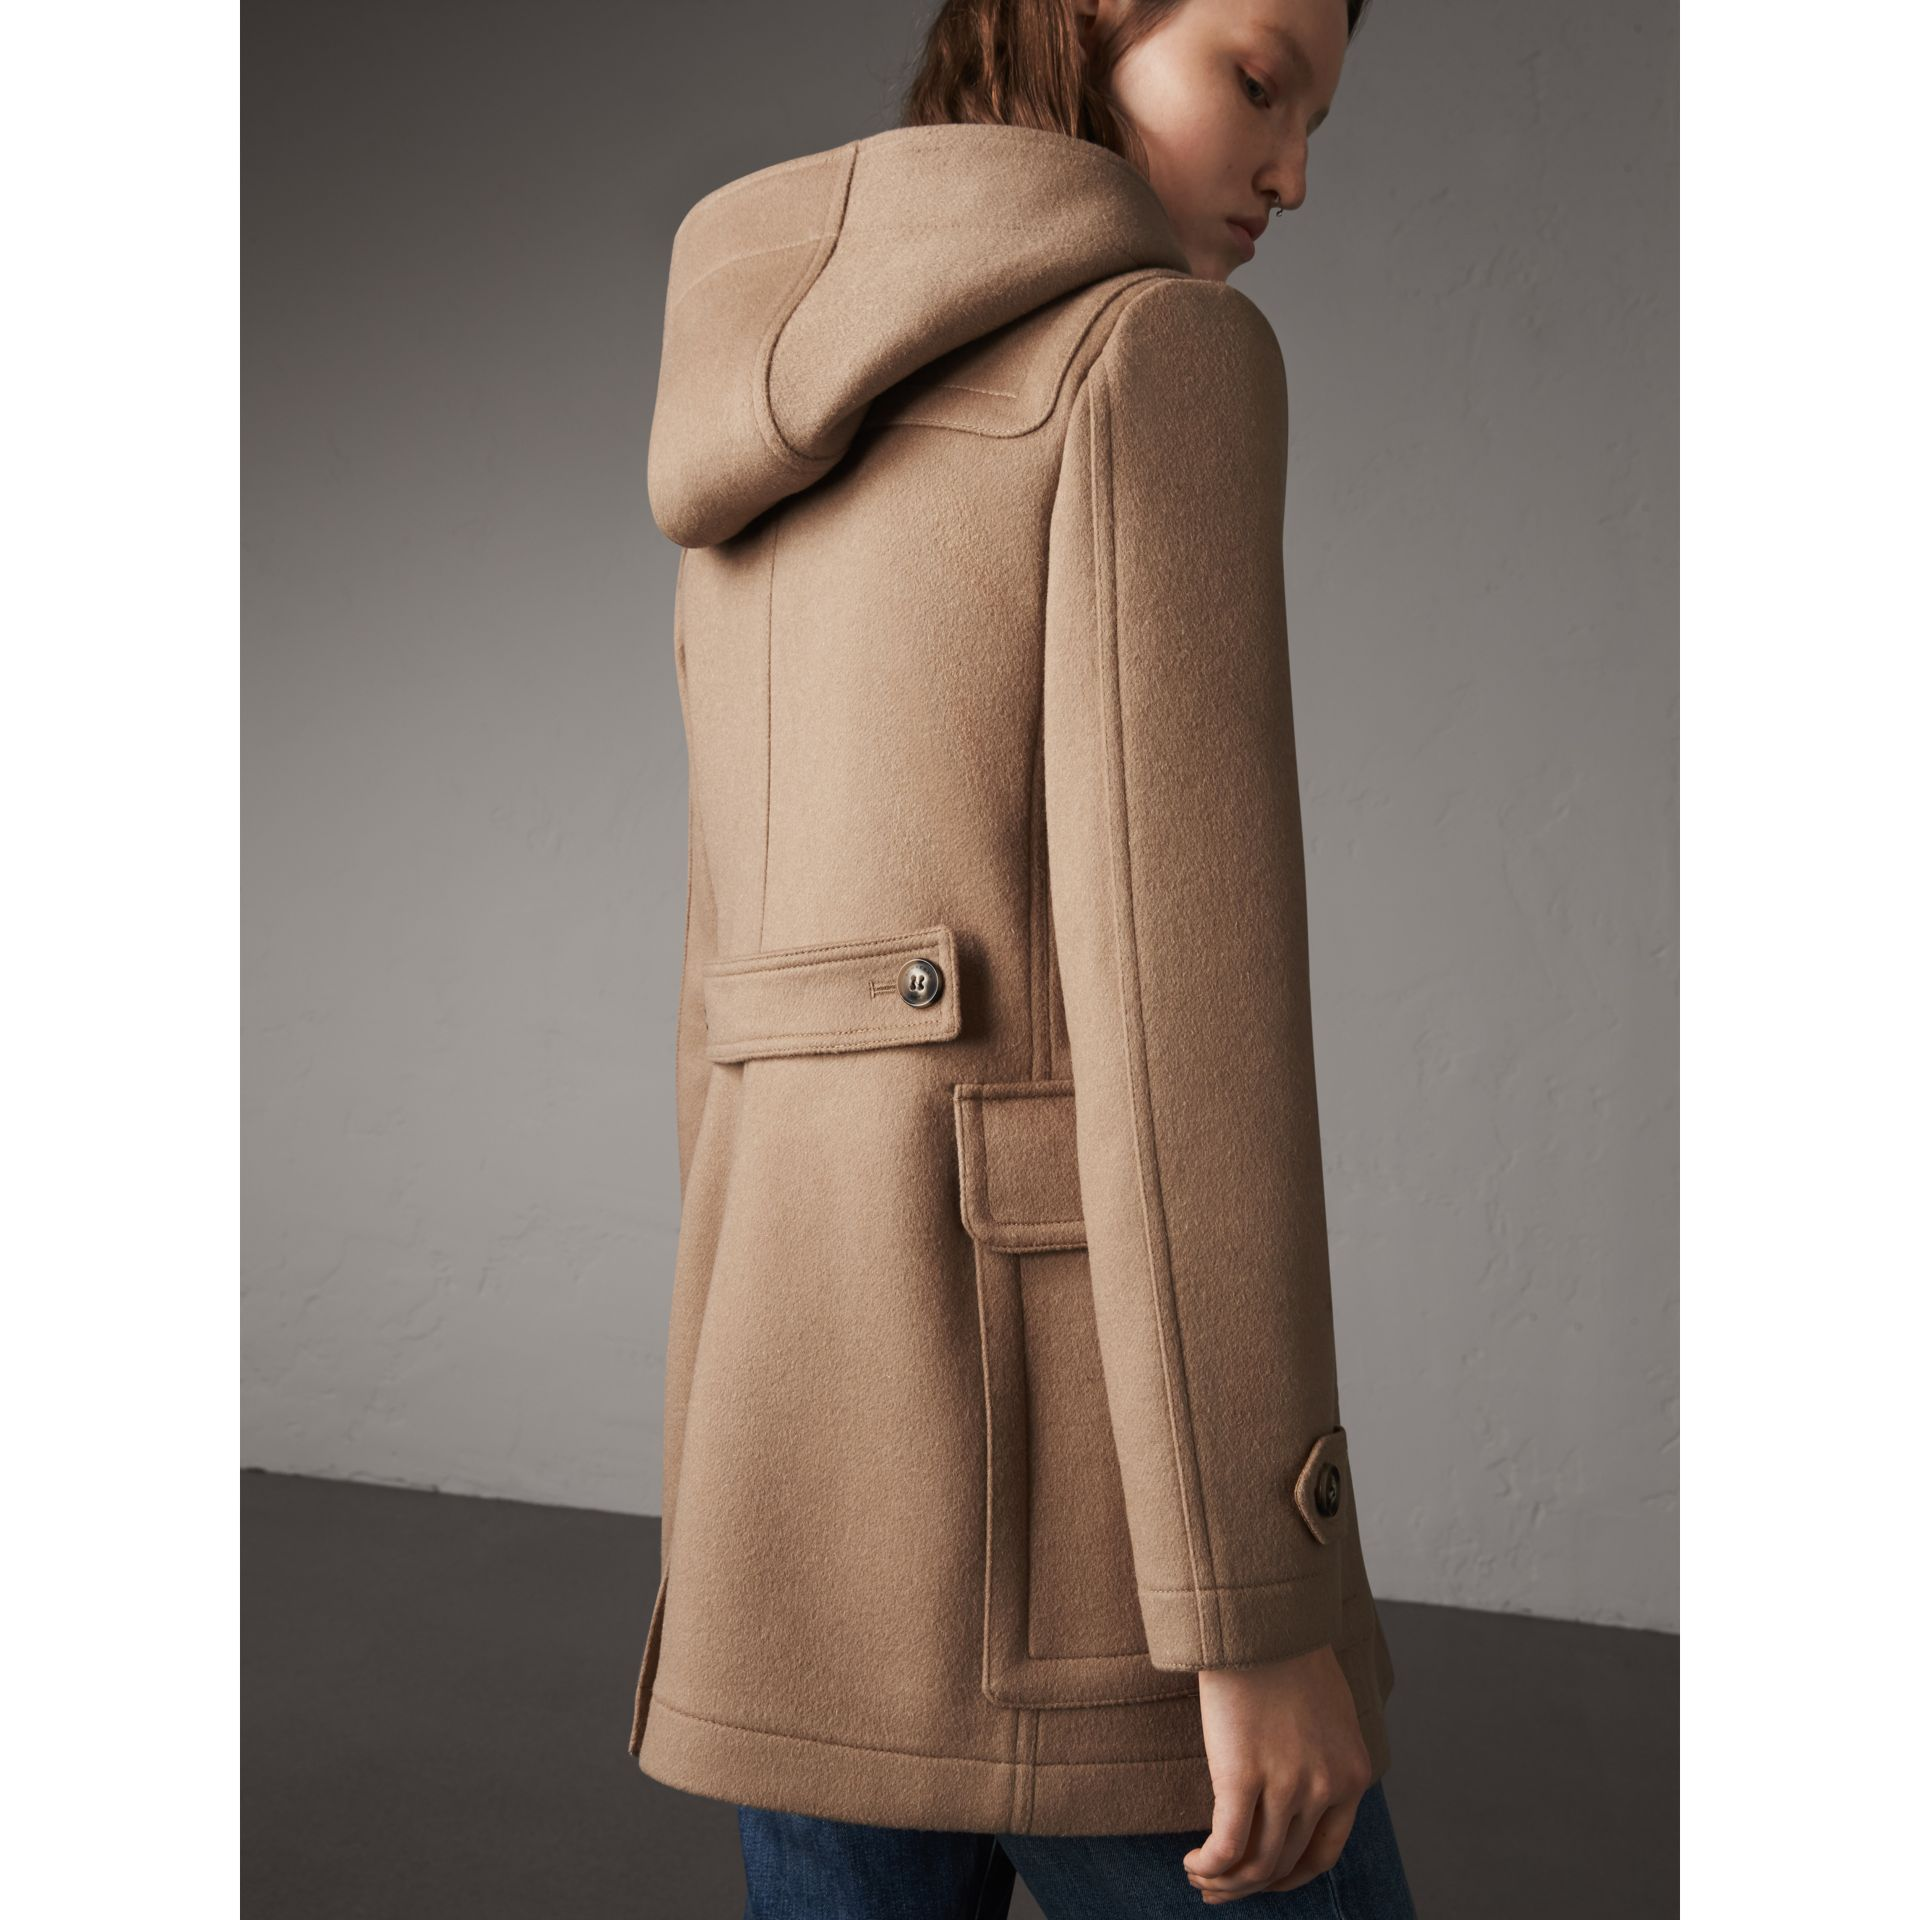 Fitted Wool Duffle Coat in New Camel - Women | Burberry Australia - gallery image 3